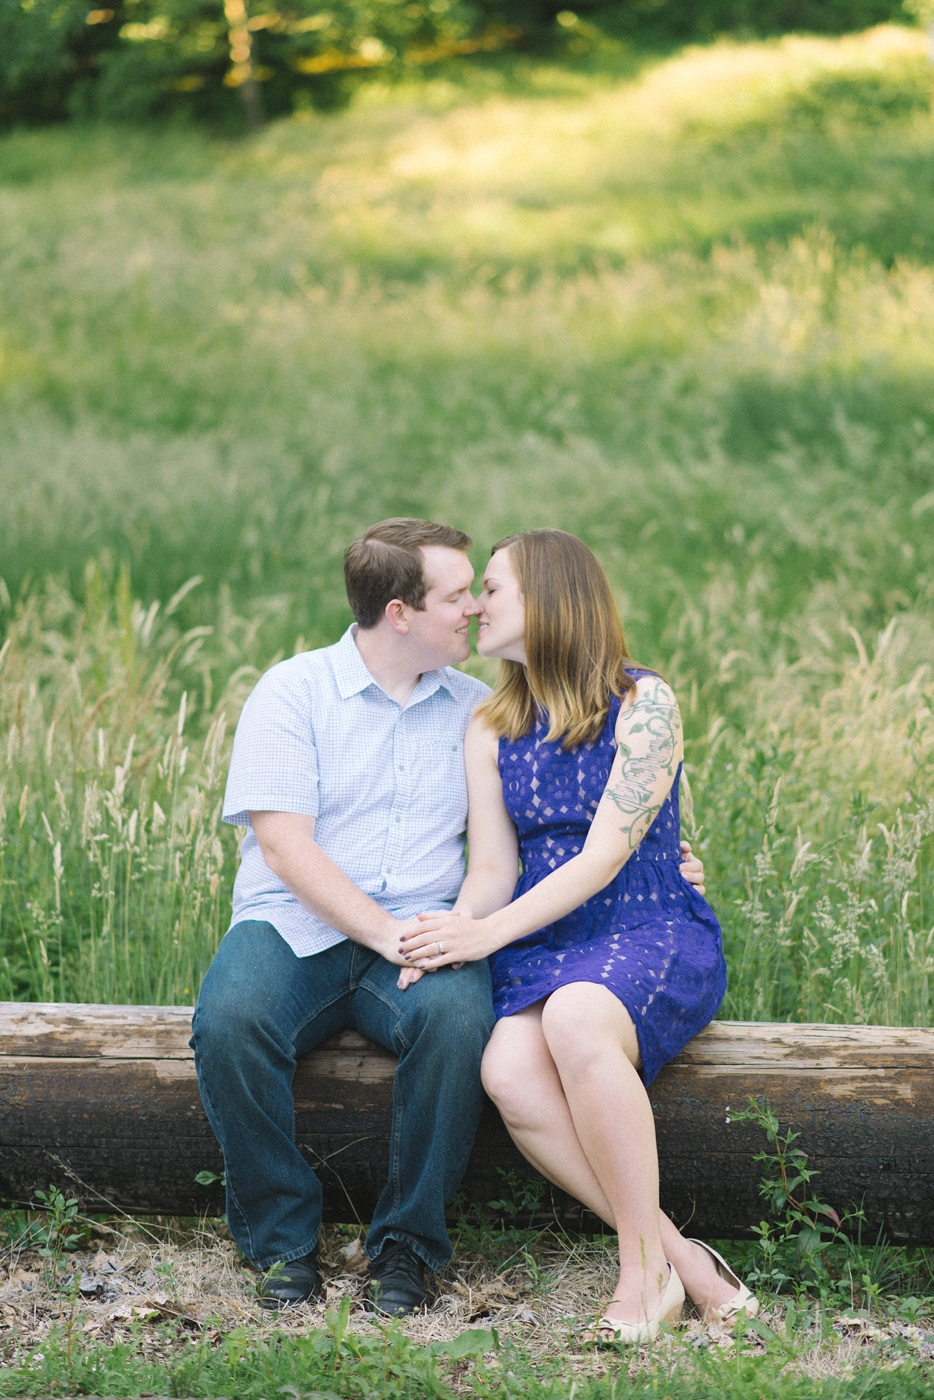 engagement-photography-portland-oregon-hoyt-arboretum-washington-park-romantic-couples-portraits-nature-natural-light-forest-field-shelley-marie-photo-2